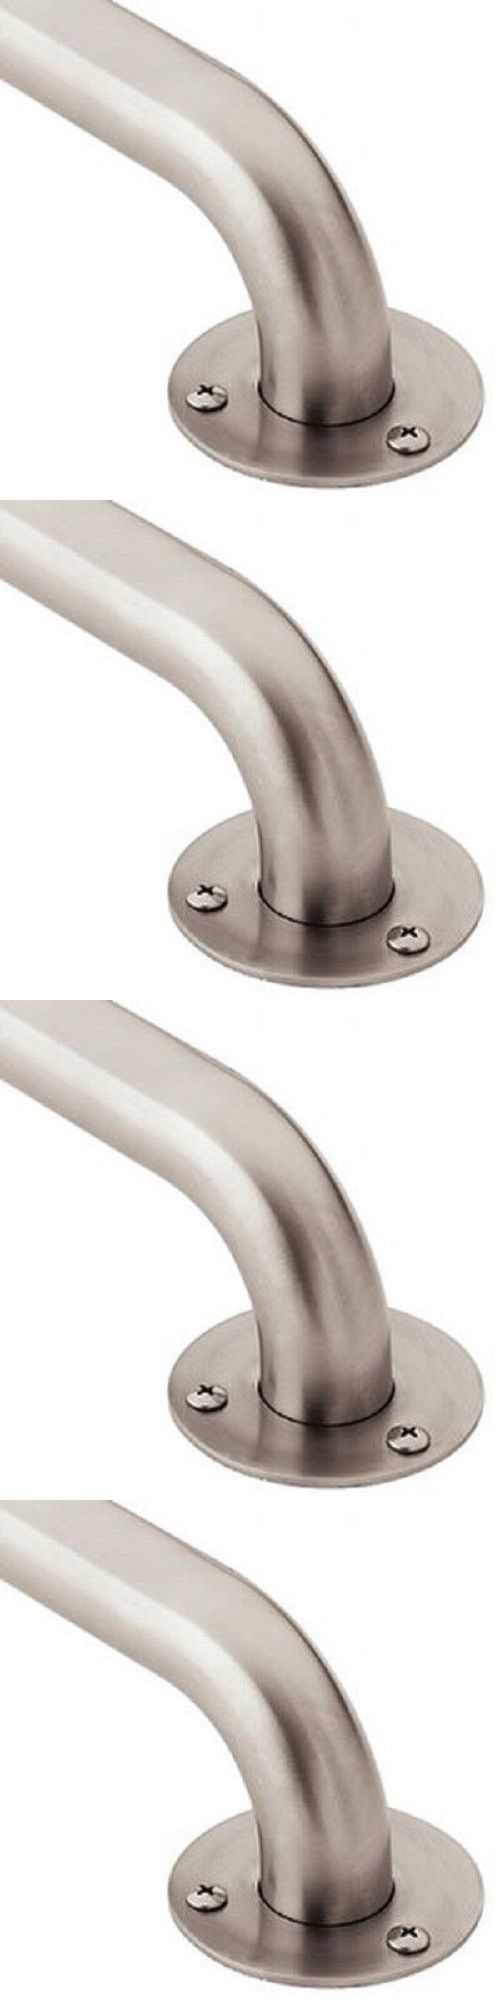 Other Accessibility Fixtures: Moen Stainless Steel Ss Bathroom Safety Grab Bars 12 18 24 36 42 Inch -> BUY IT NOW ONLY: $32.73 on eBay!